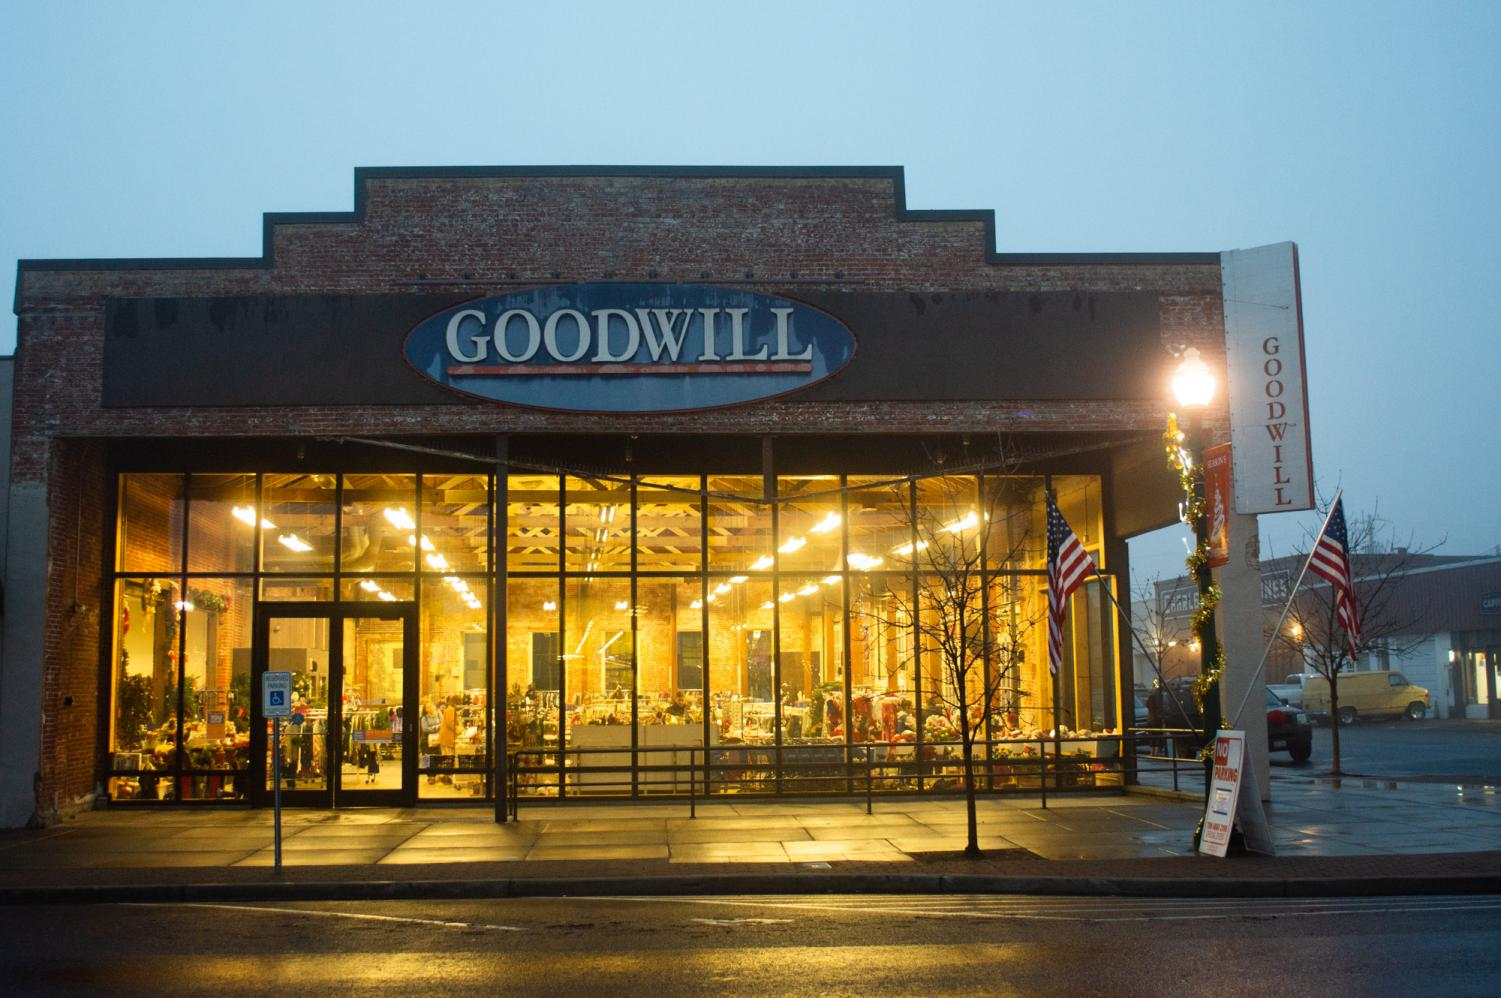 The Goodwill in downtown Walla Walla will remain open in the location pictured above until the new store in College Place is ready. As of now, the opening is planned for the spring of 2021. The new store will feature an employee connection center, a new loading dock and easier access for donations.